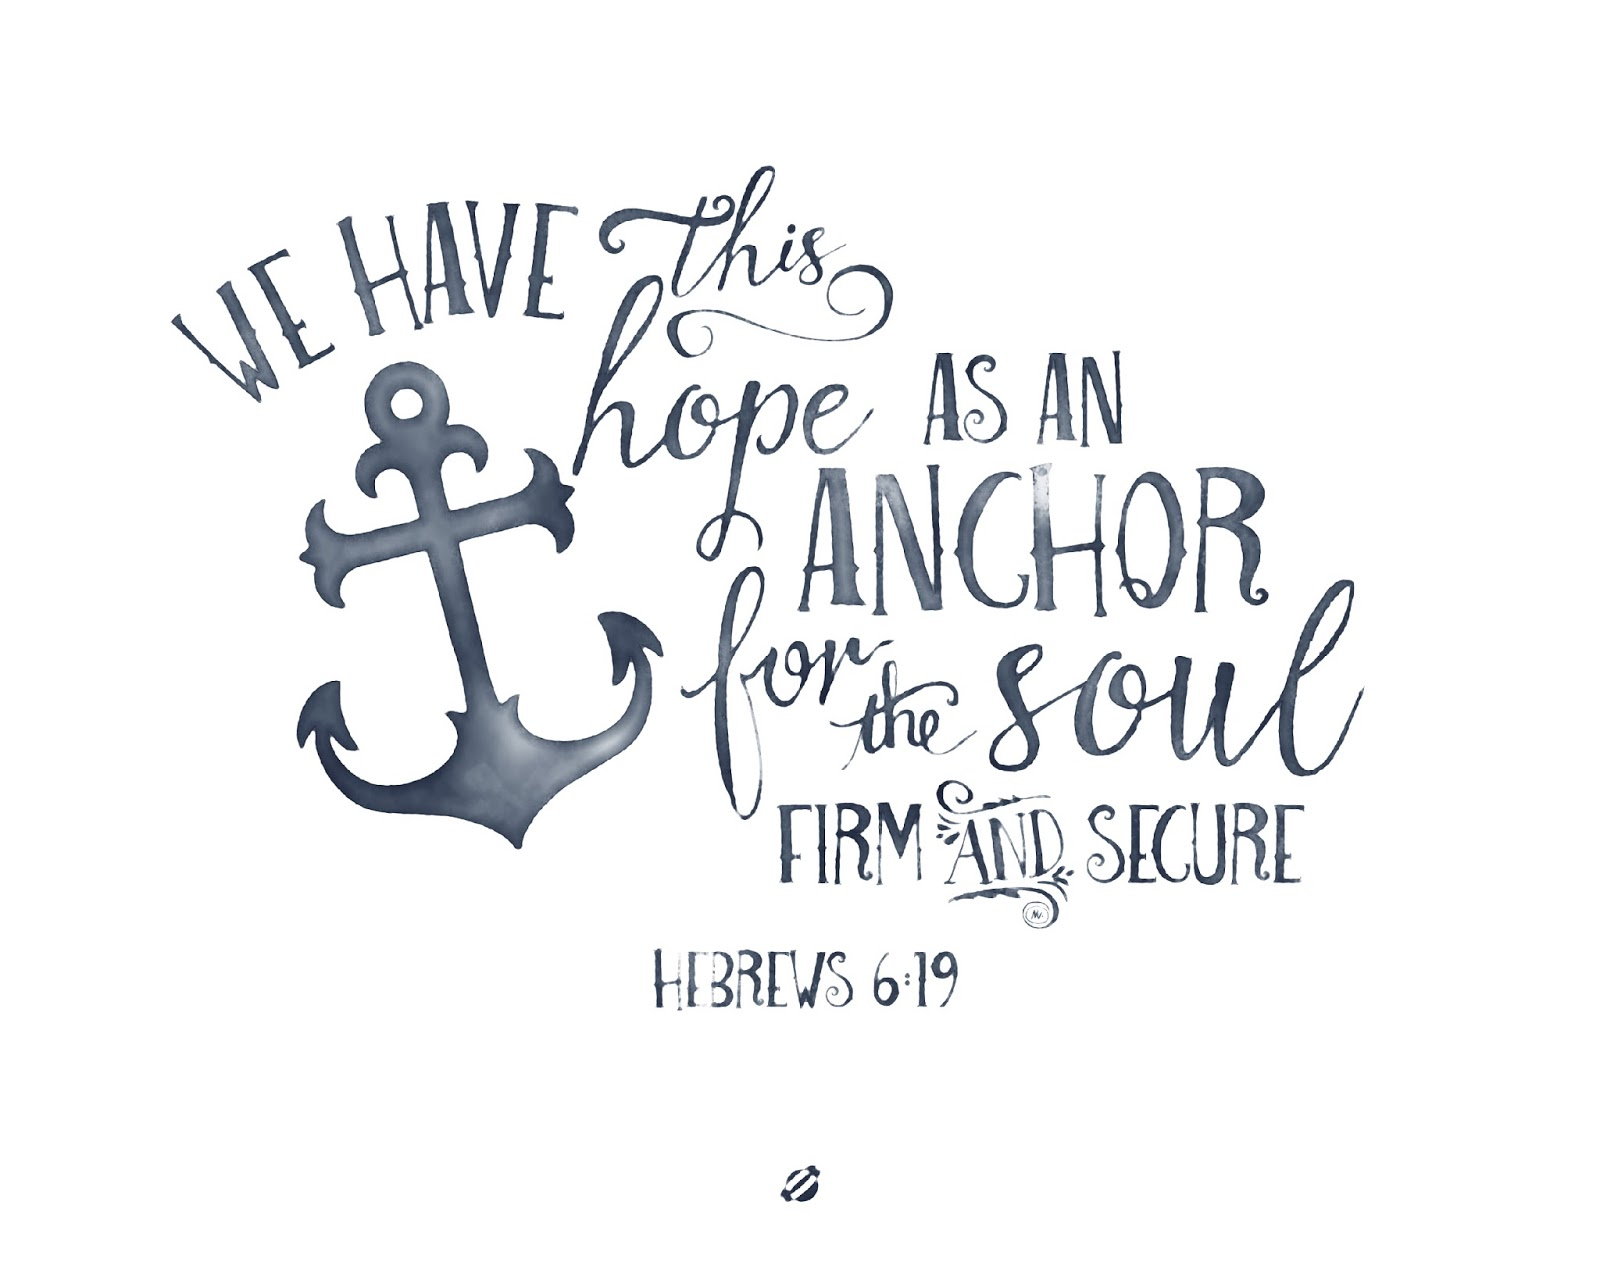 Superb LostBumblebee ©2015 MDBN : Hope Is An Anchor Hebrews 6:19 : Free Donate Idea